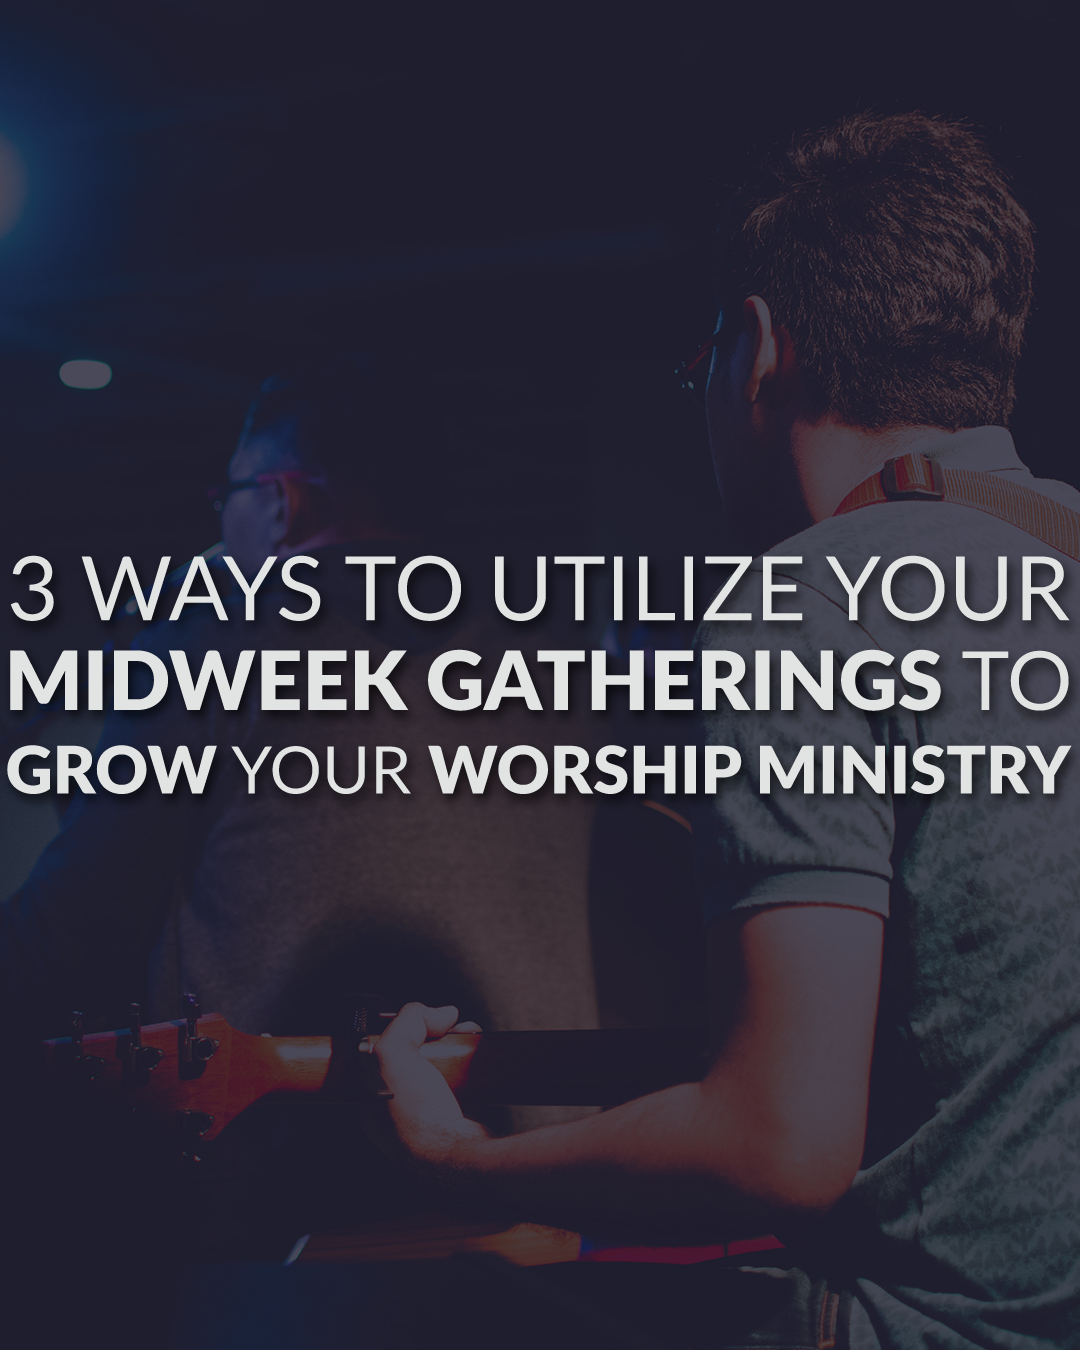 3 Ways To Utilize Your Midweek Gatherings To Grow Your Worship Ministry